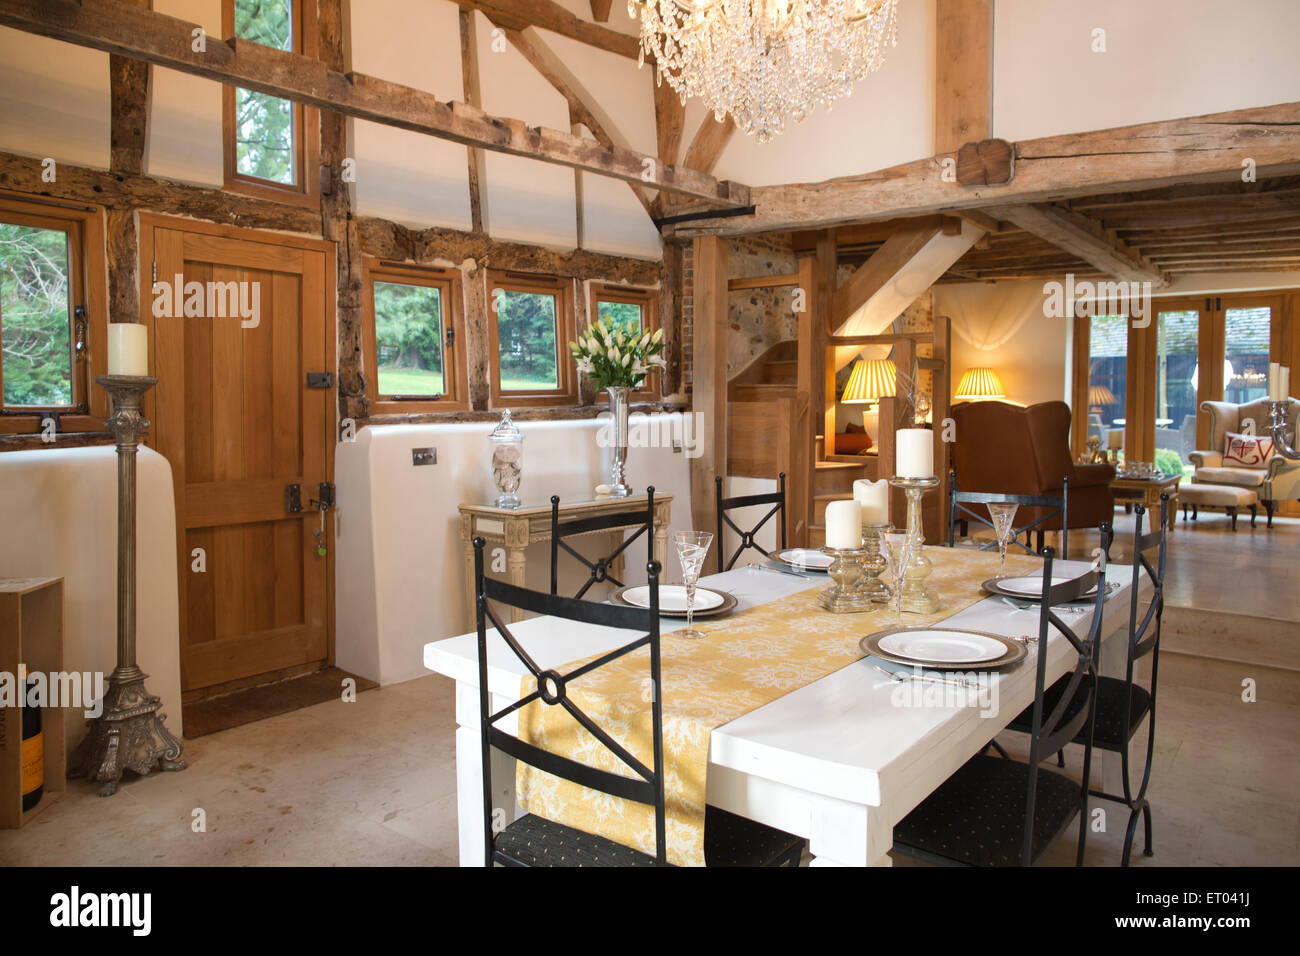 Barn Conversion barn conversion uk stock photos & barn conversion uk stock images